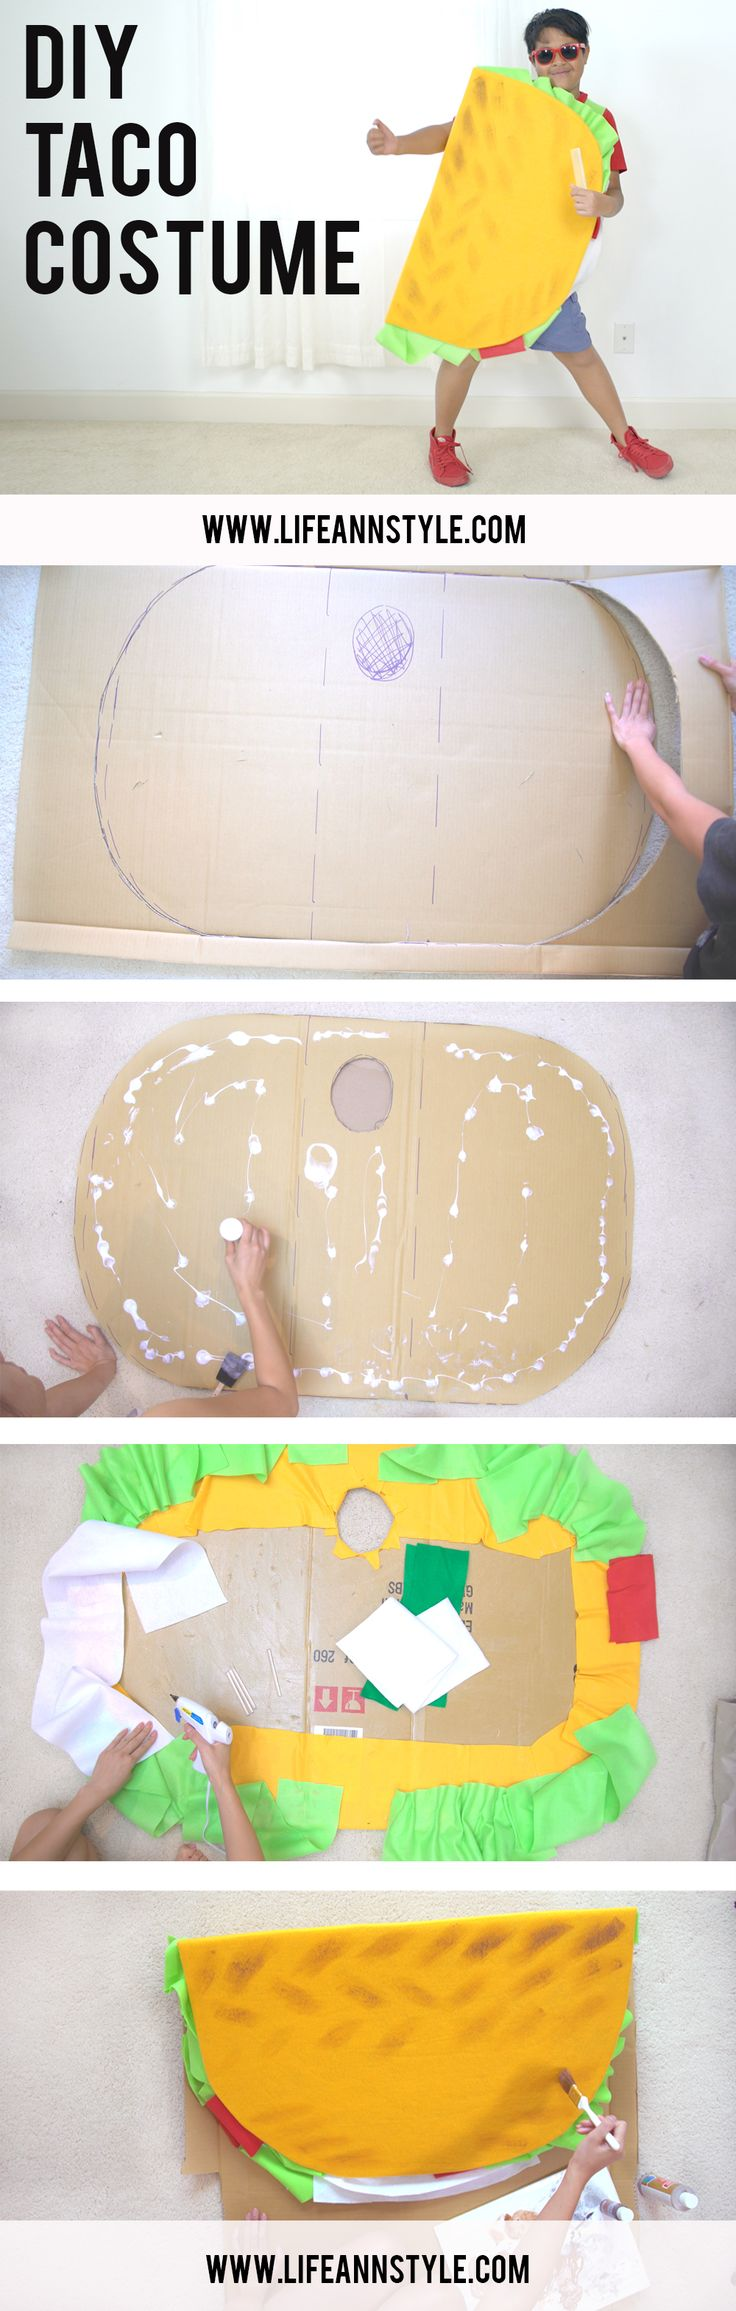 DIY TACO COSTUME / Cute kids Halloween project